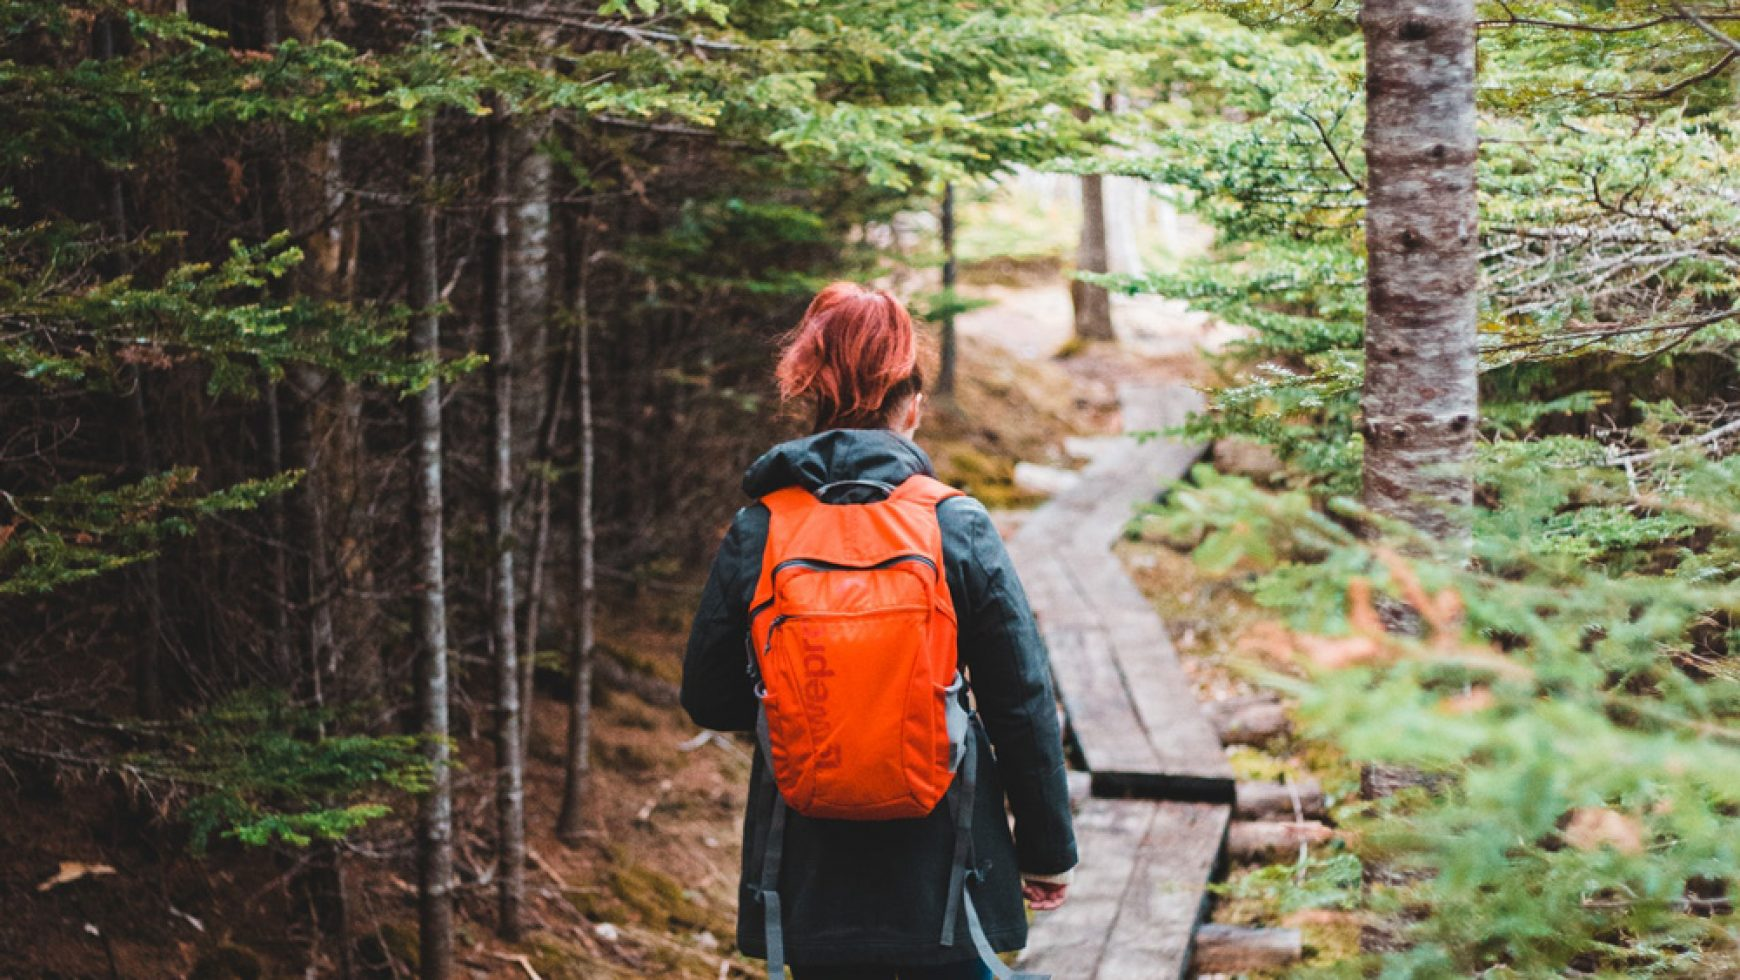 Finding Happy: On A Lonely Trail